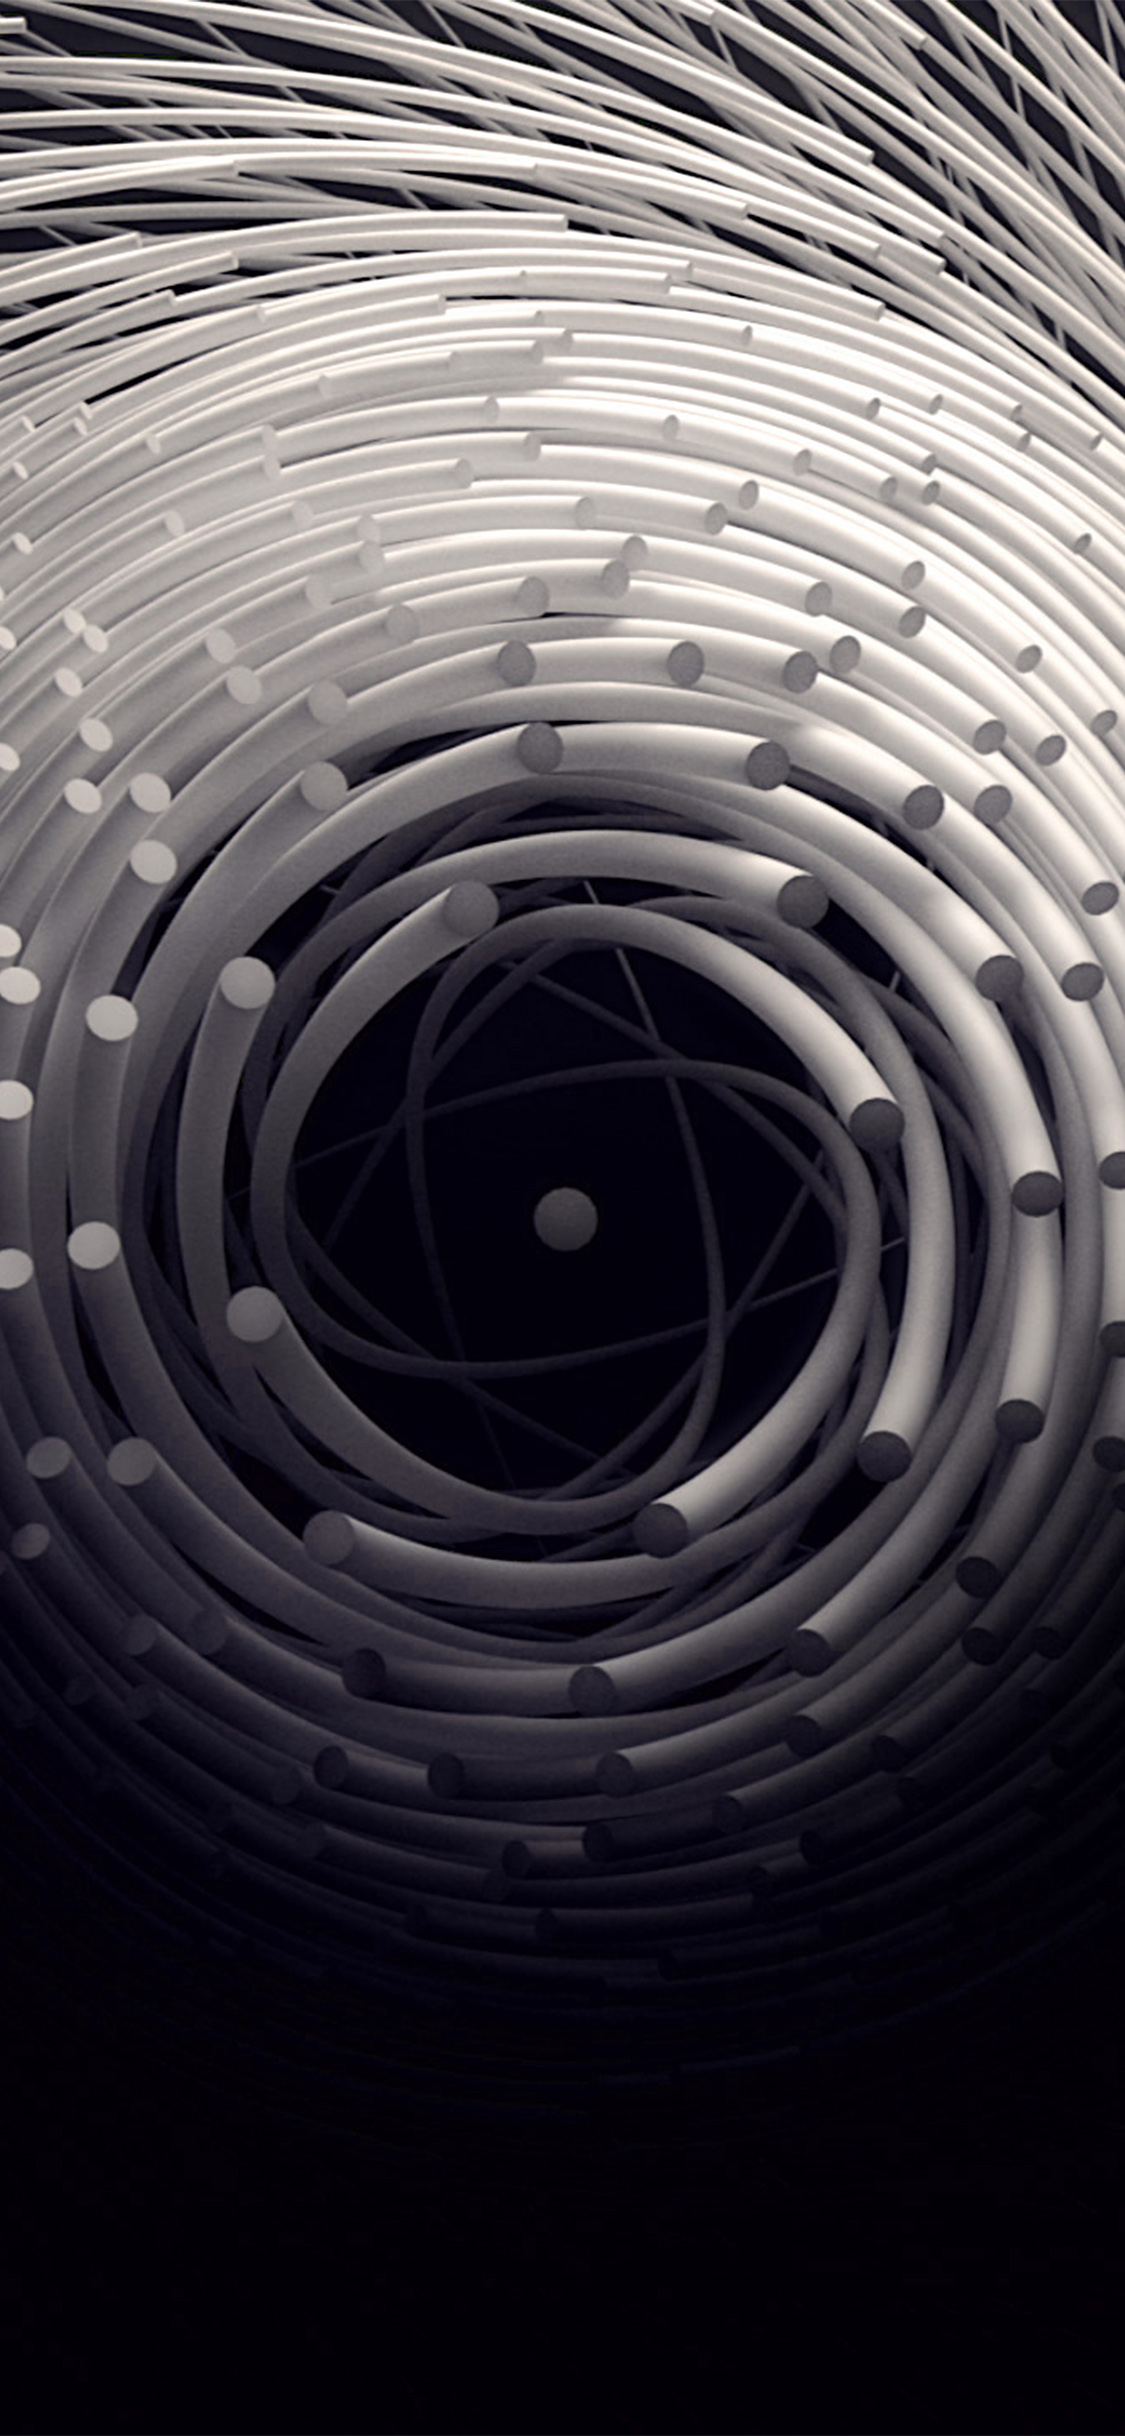 iPhoneXpapers.com-Apple-iPhone-wallpaper-ax82-circle-3d-dark-abstact-illustration-art